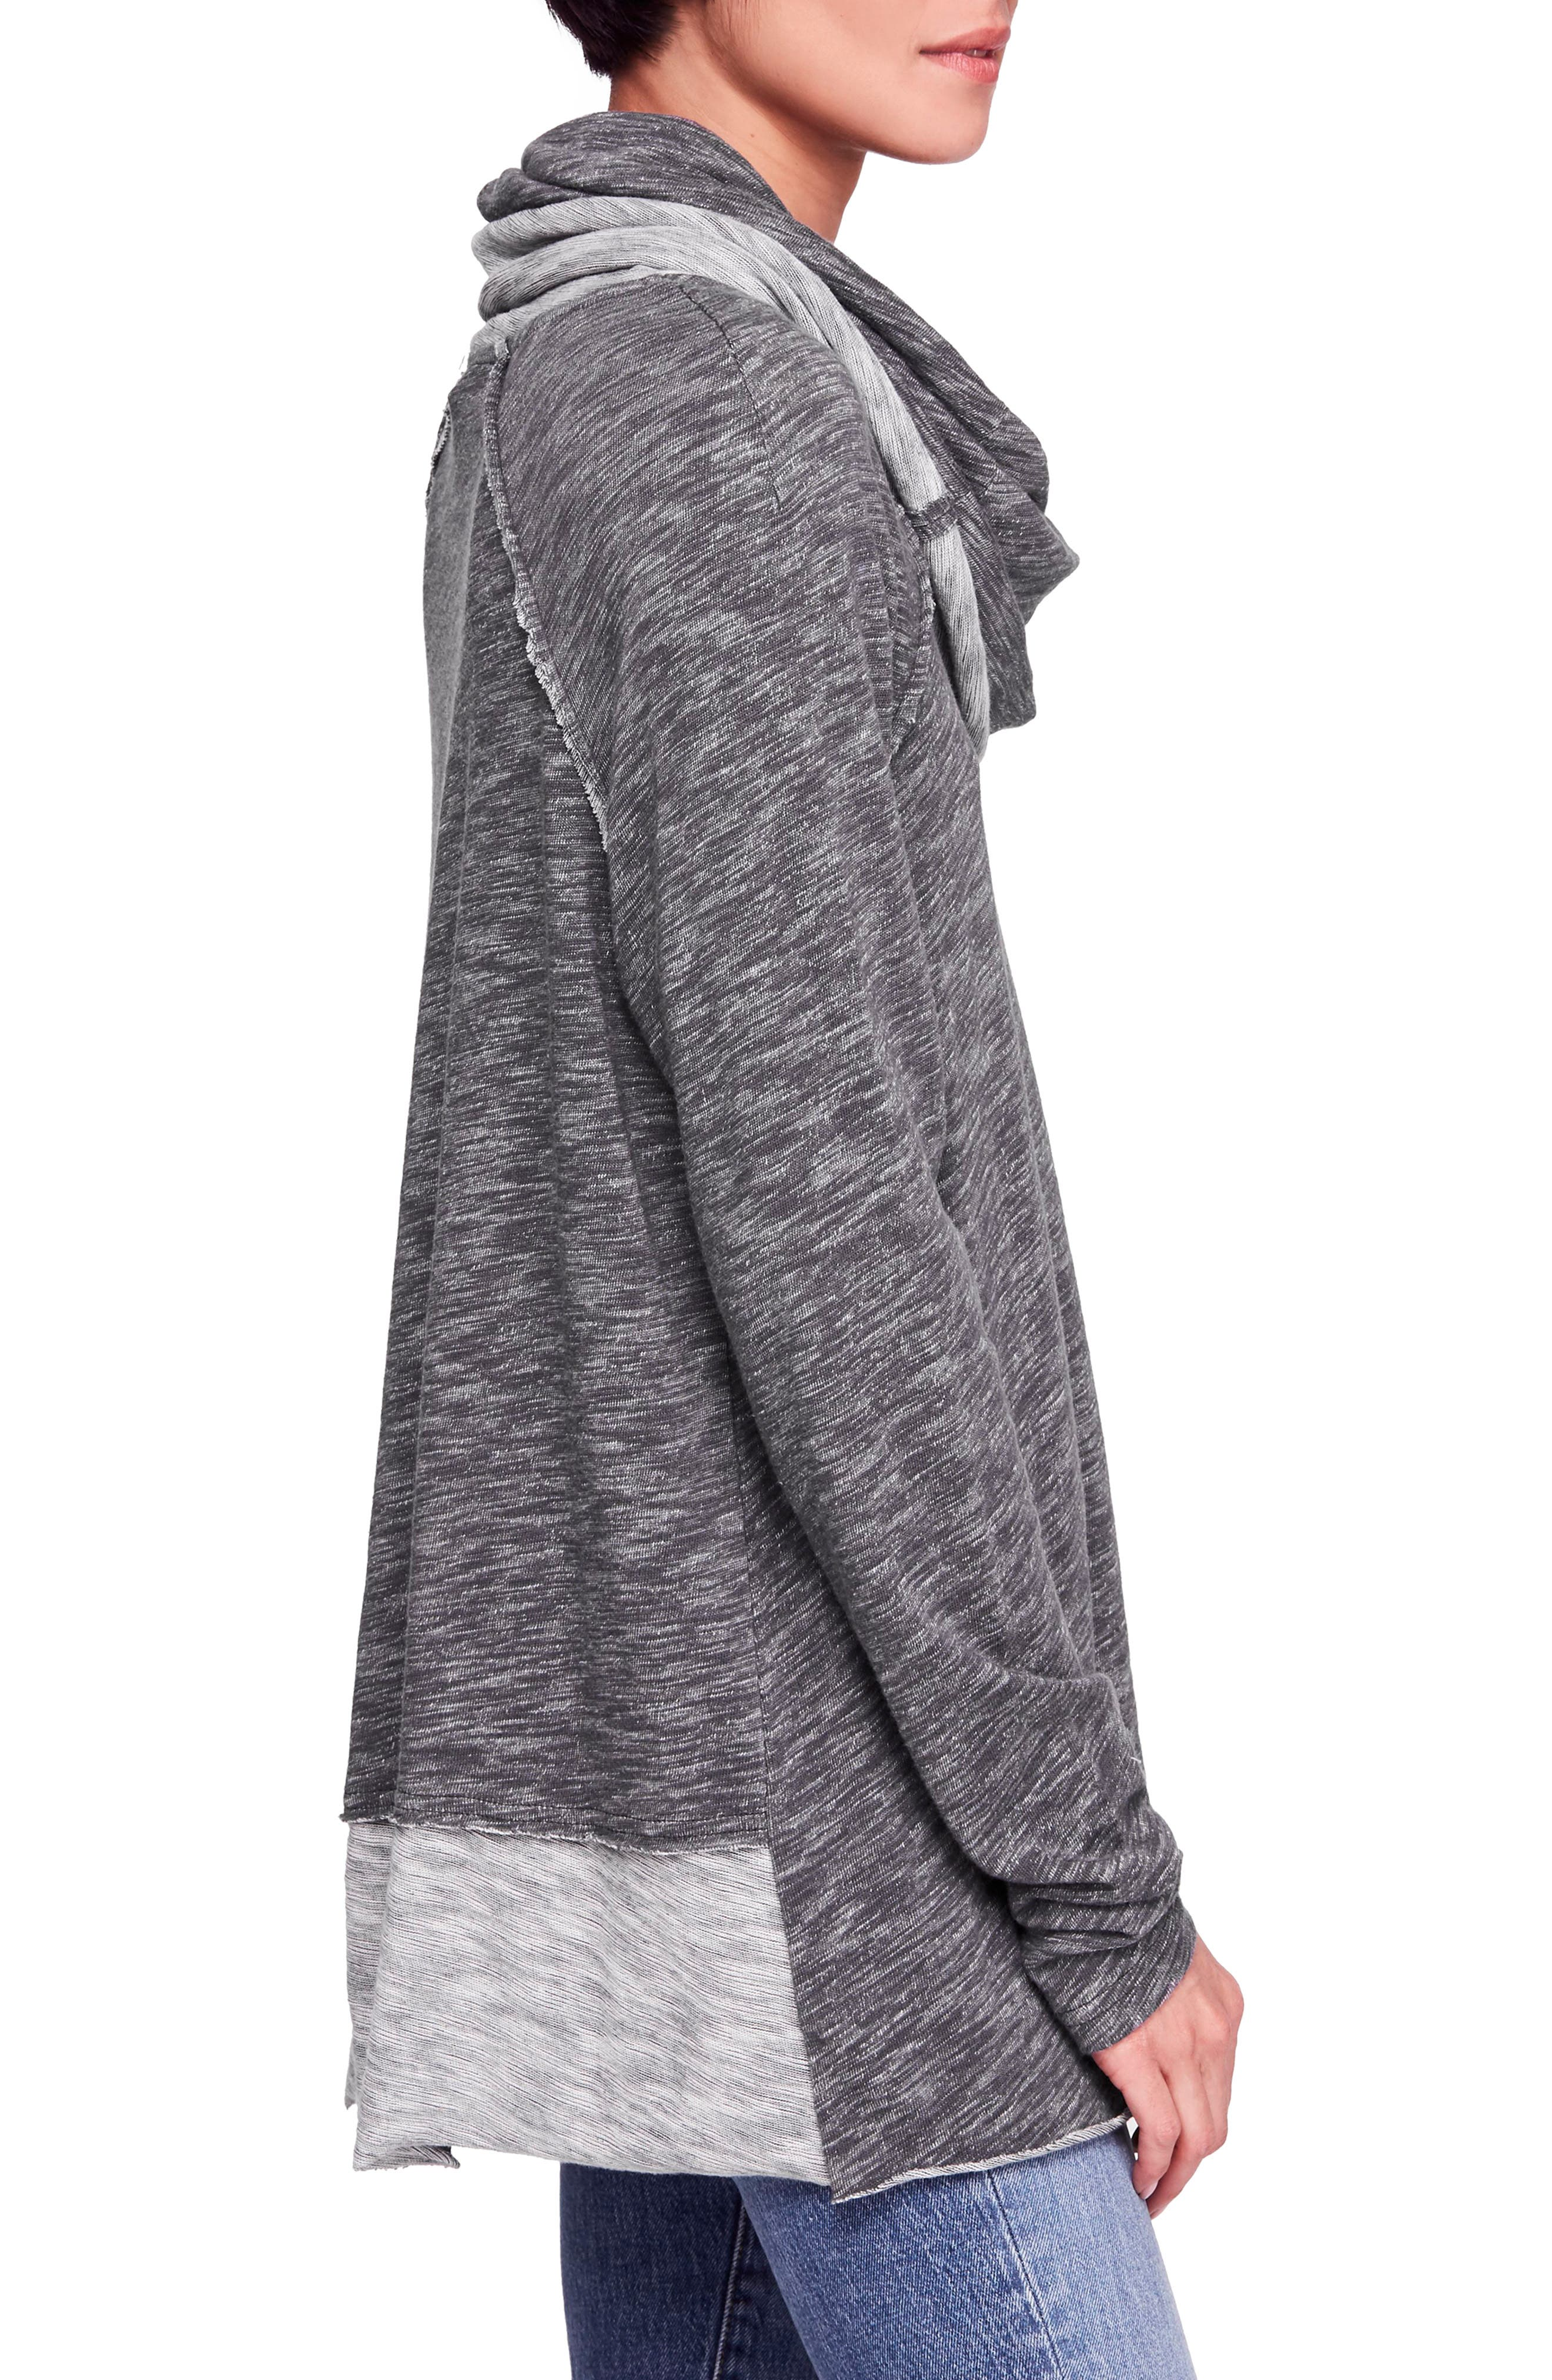 Cocoon Cowl Neck Top,                             Alternate thumbnail 5, color,                             Charcoal